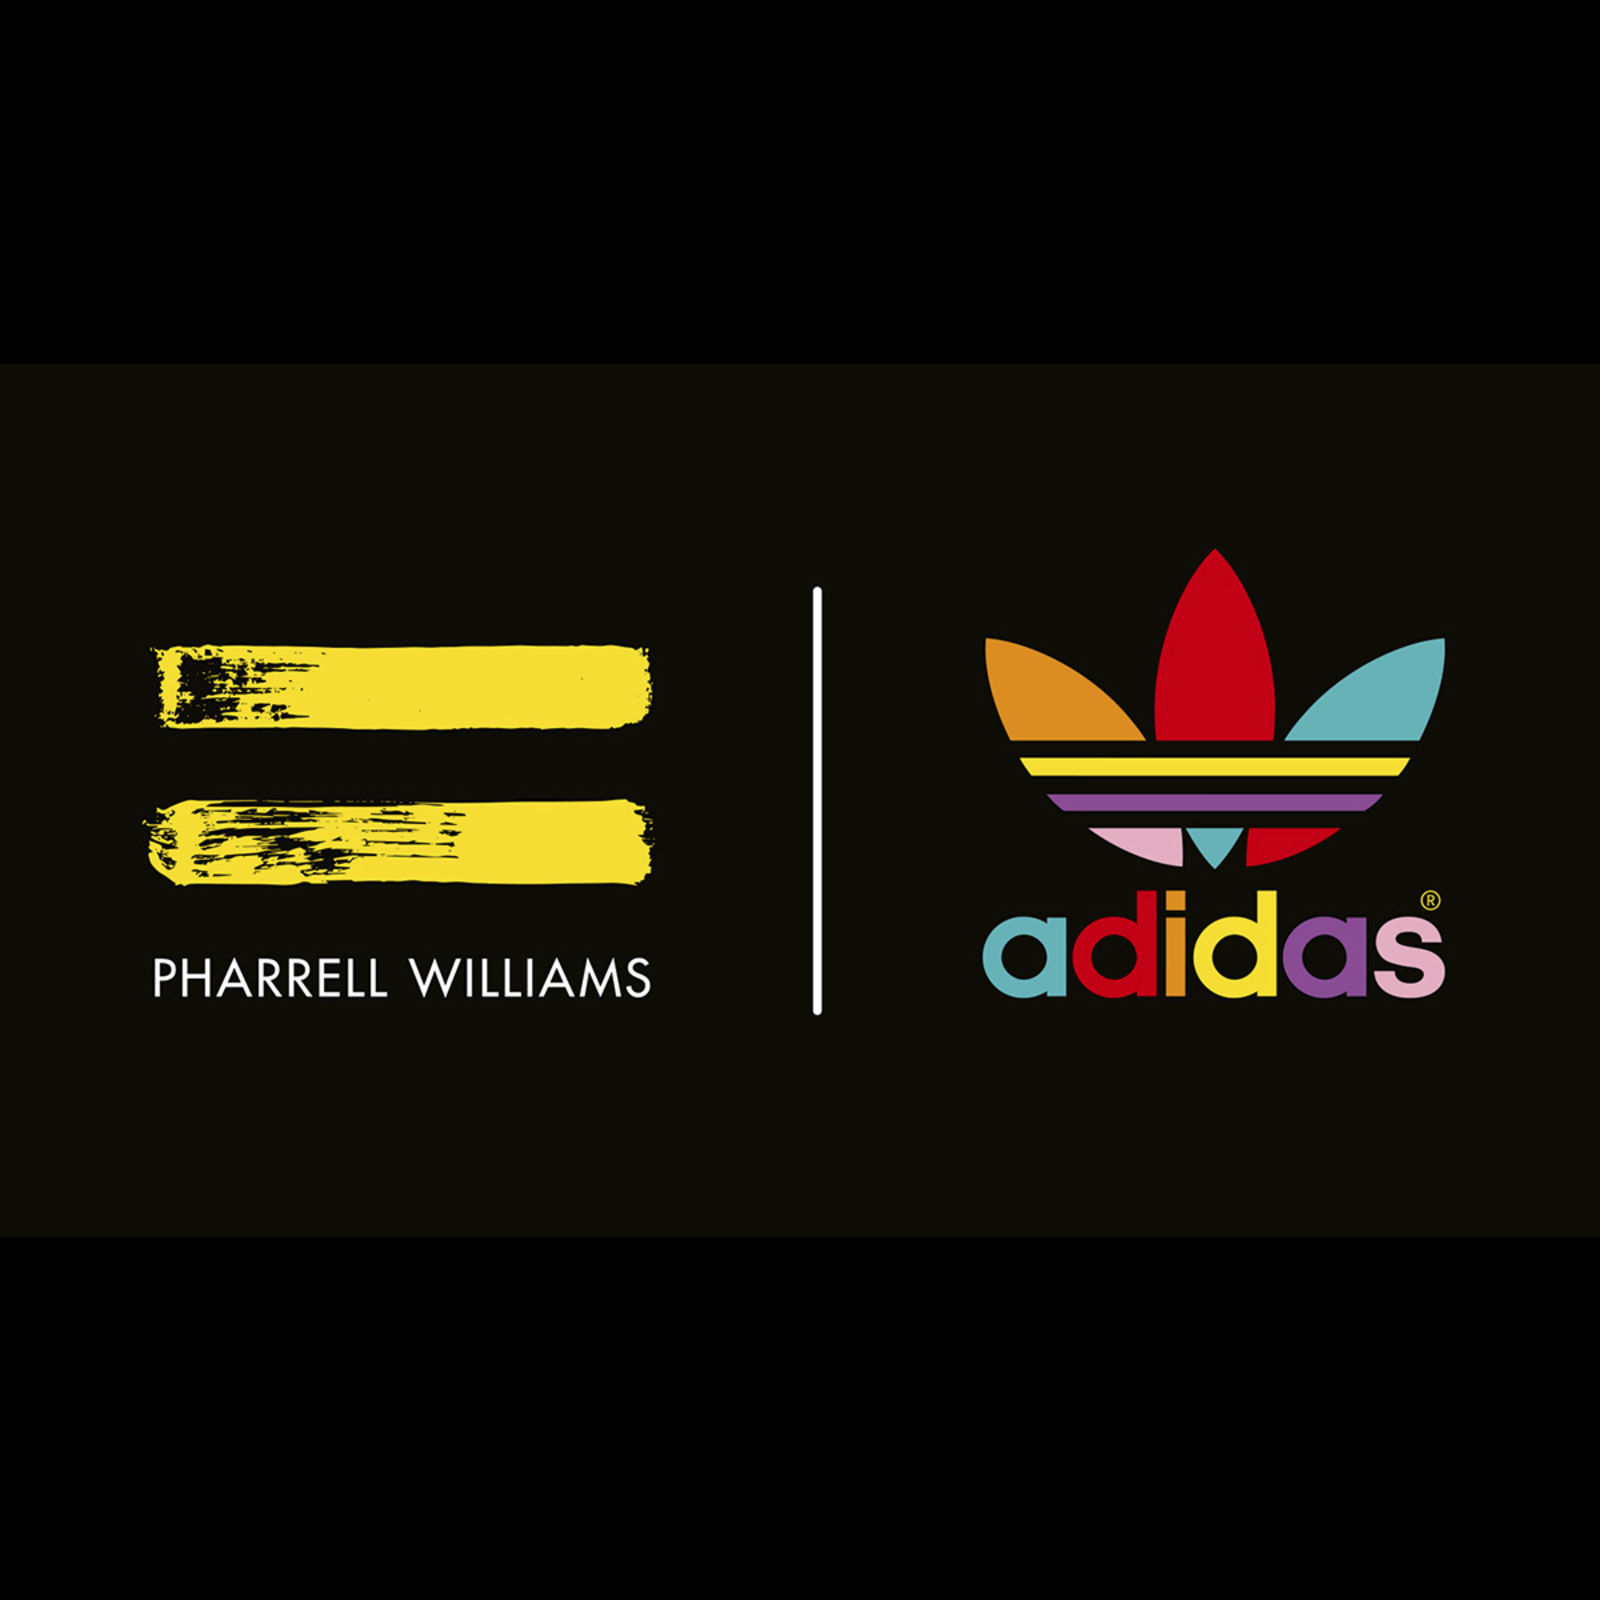 adidas x PHARRELL WILLIAMS (Bild 1)